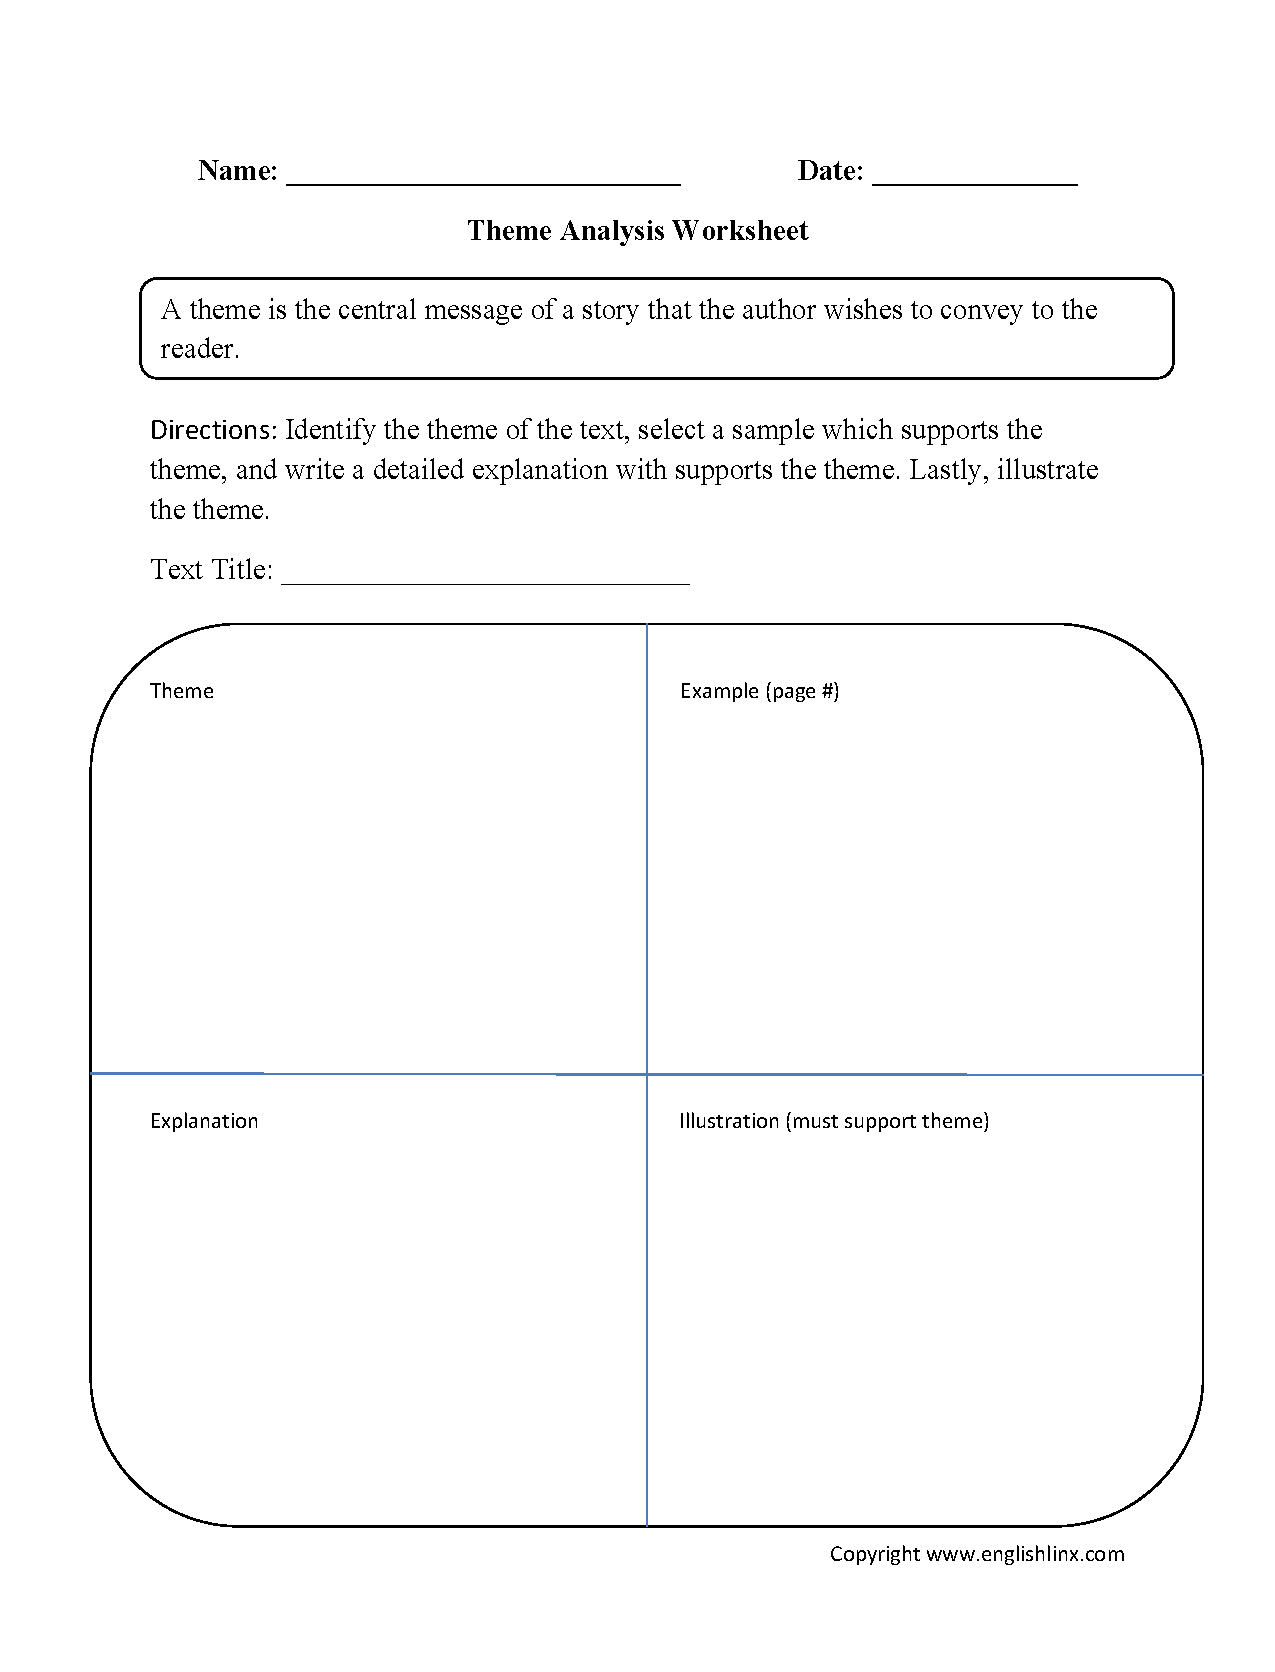 worksheet Identifying Theme Worksheet Answers theme analysis worksheet education language arts pinterest this instructs the student to analyze of a given text will how interacts